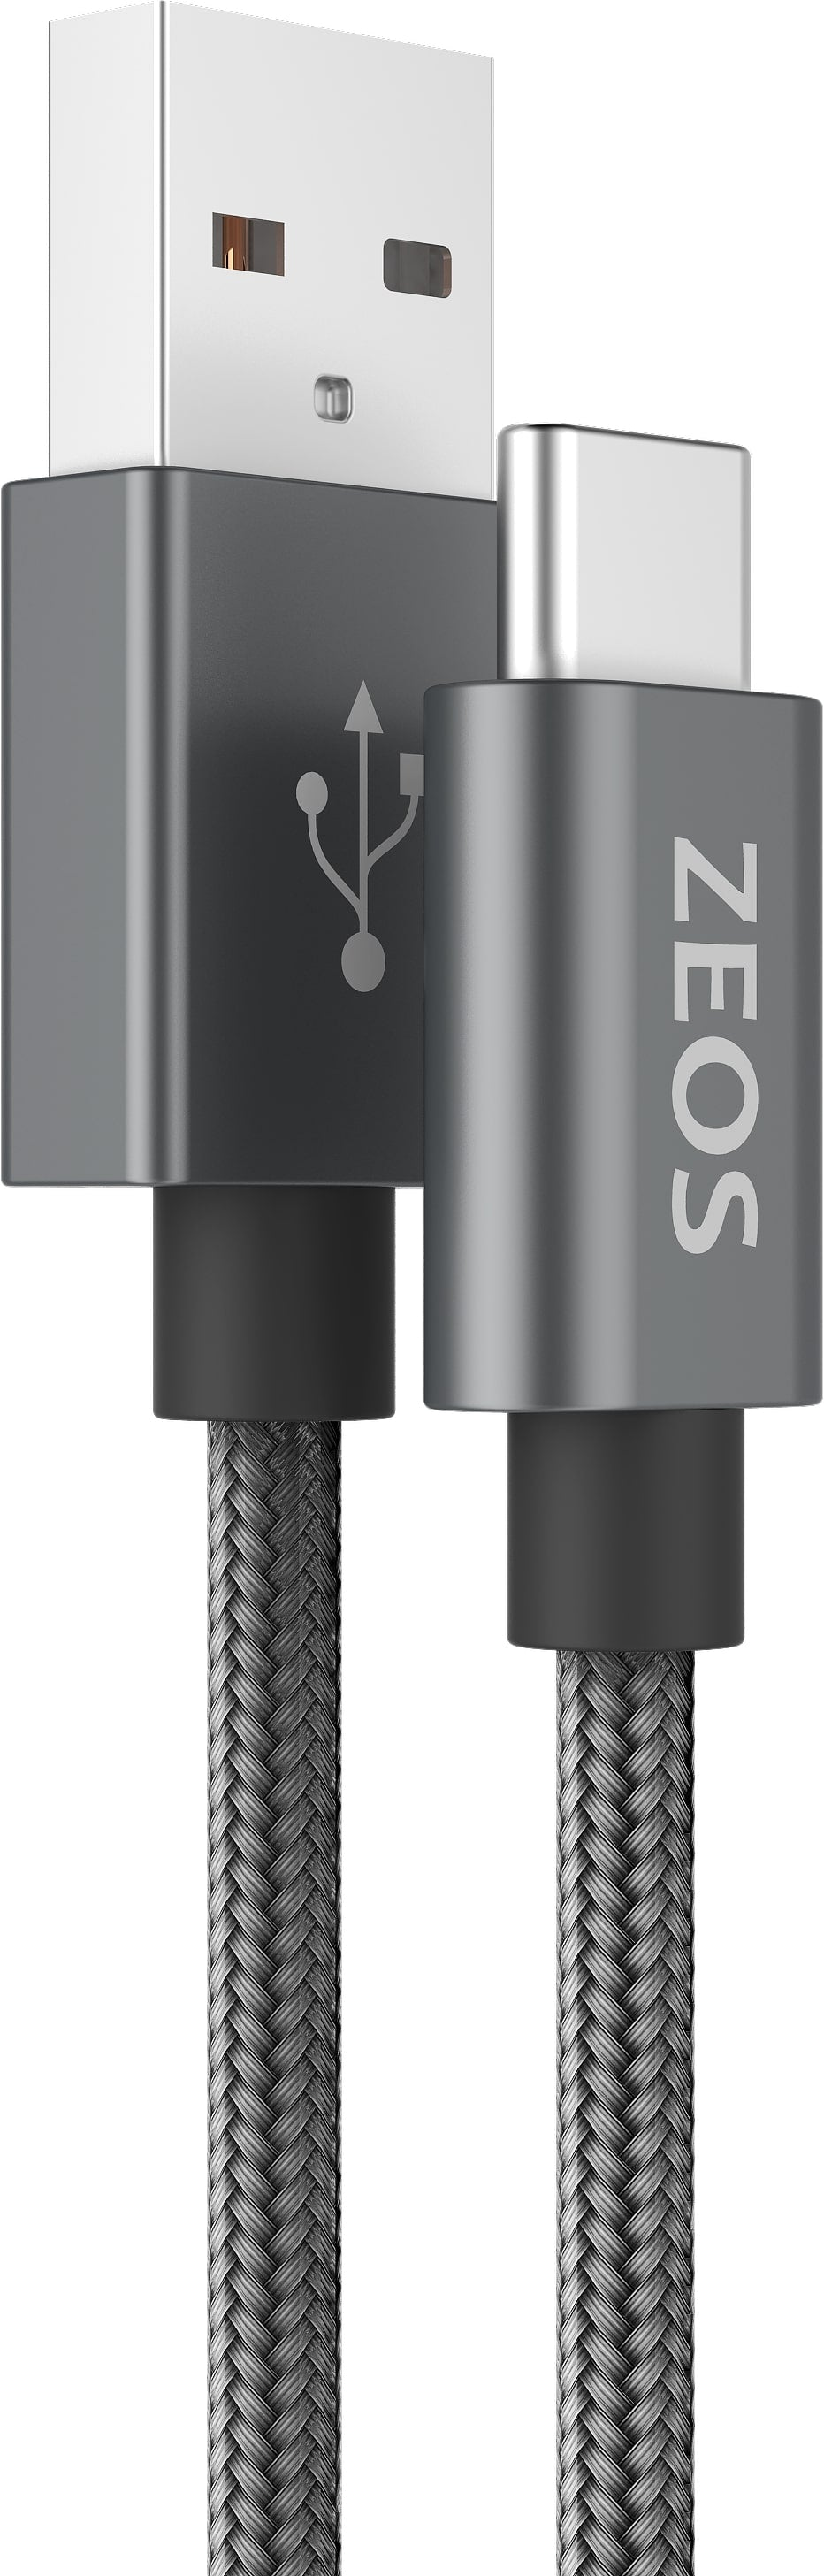 ZEOS PREMIUM TYPE C TO USB CABLE